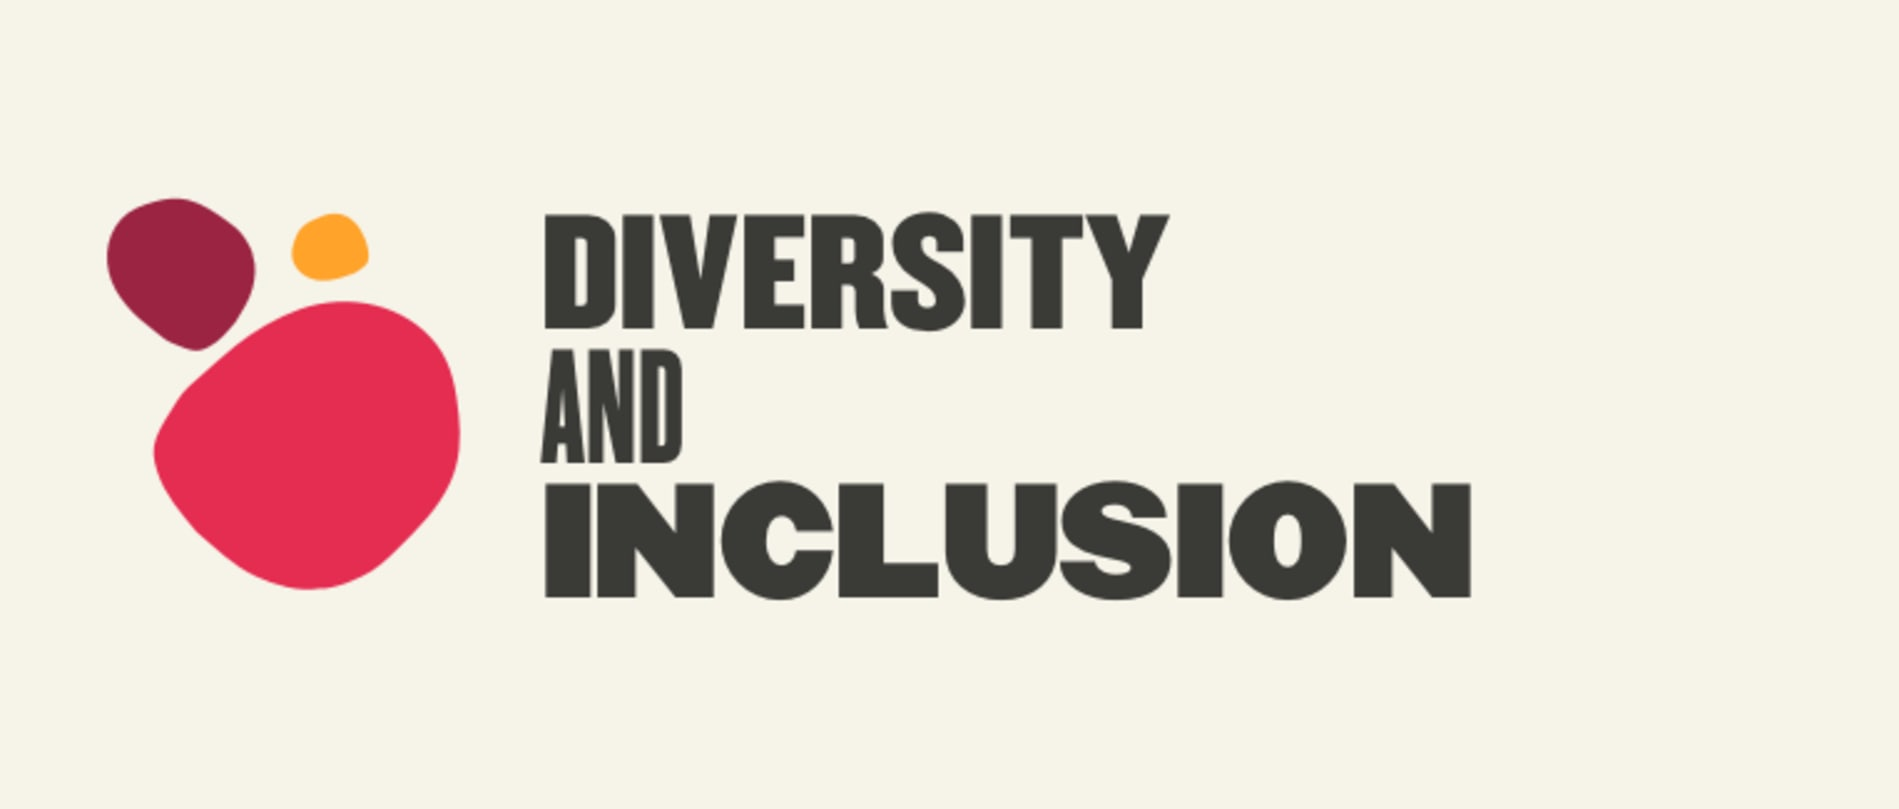 6 steps to creating a diversity and inclusion committee - DIVERSITY-AND-inclusion-_-Blog-img.png